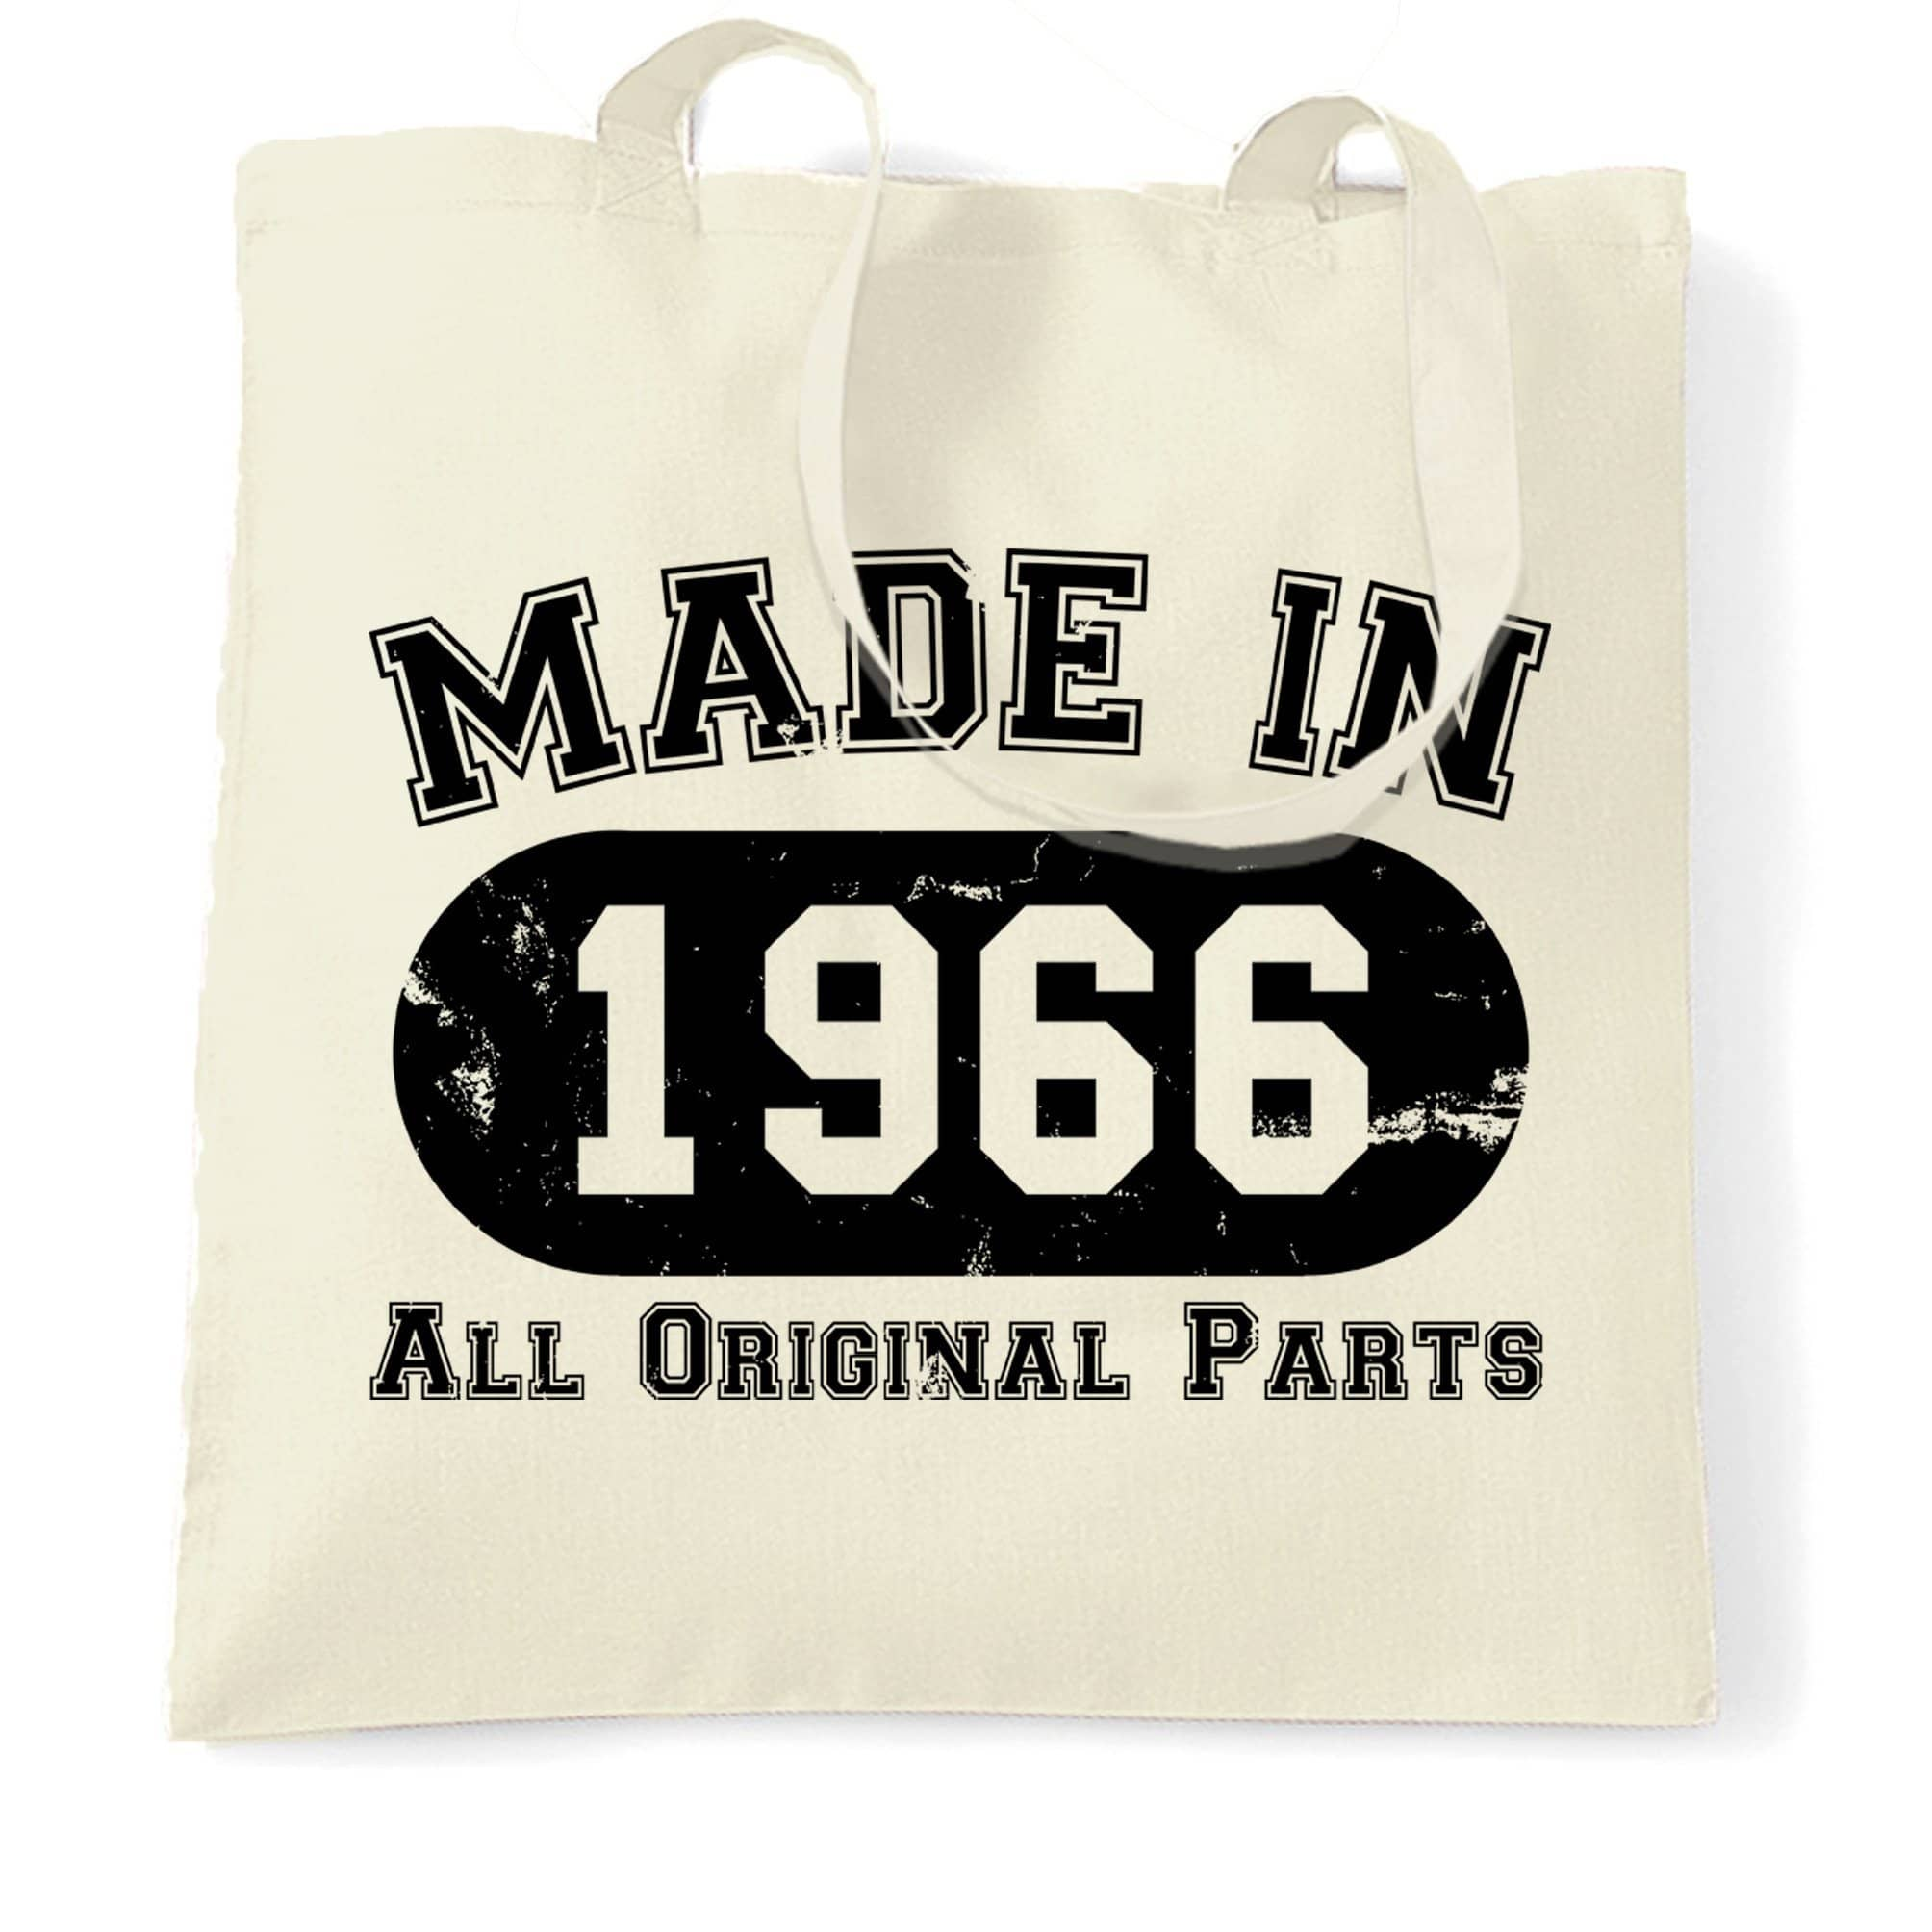 Made in 1966 All Original Parts Tote Bag [Distressed]